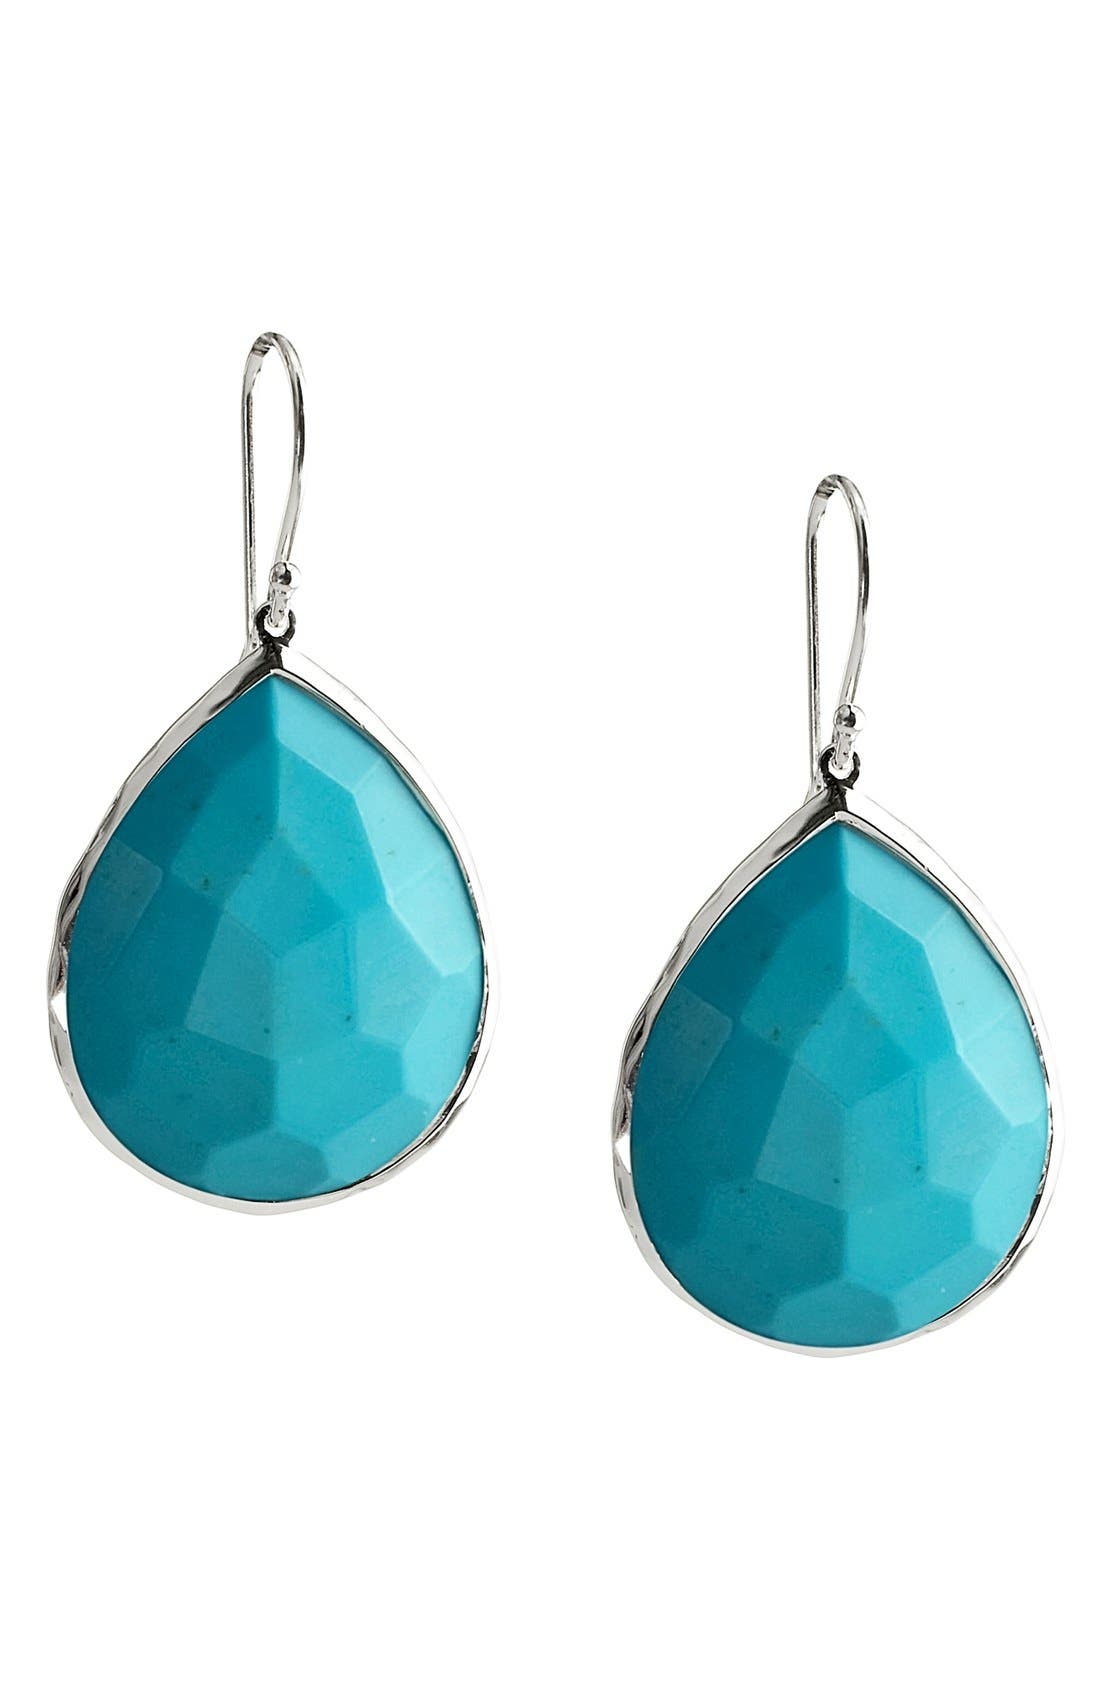 Rock Candy Large Teardrop Earrings,                             Main thumbnail 1, color,                             Silver/ Turquoise